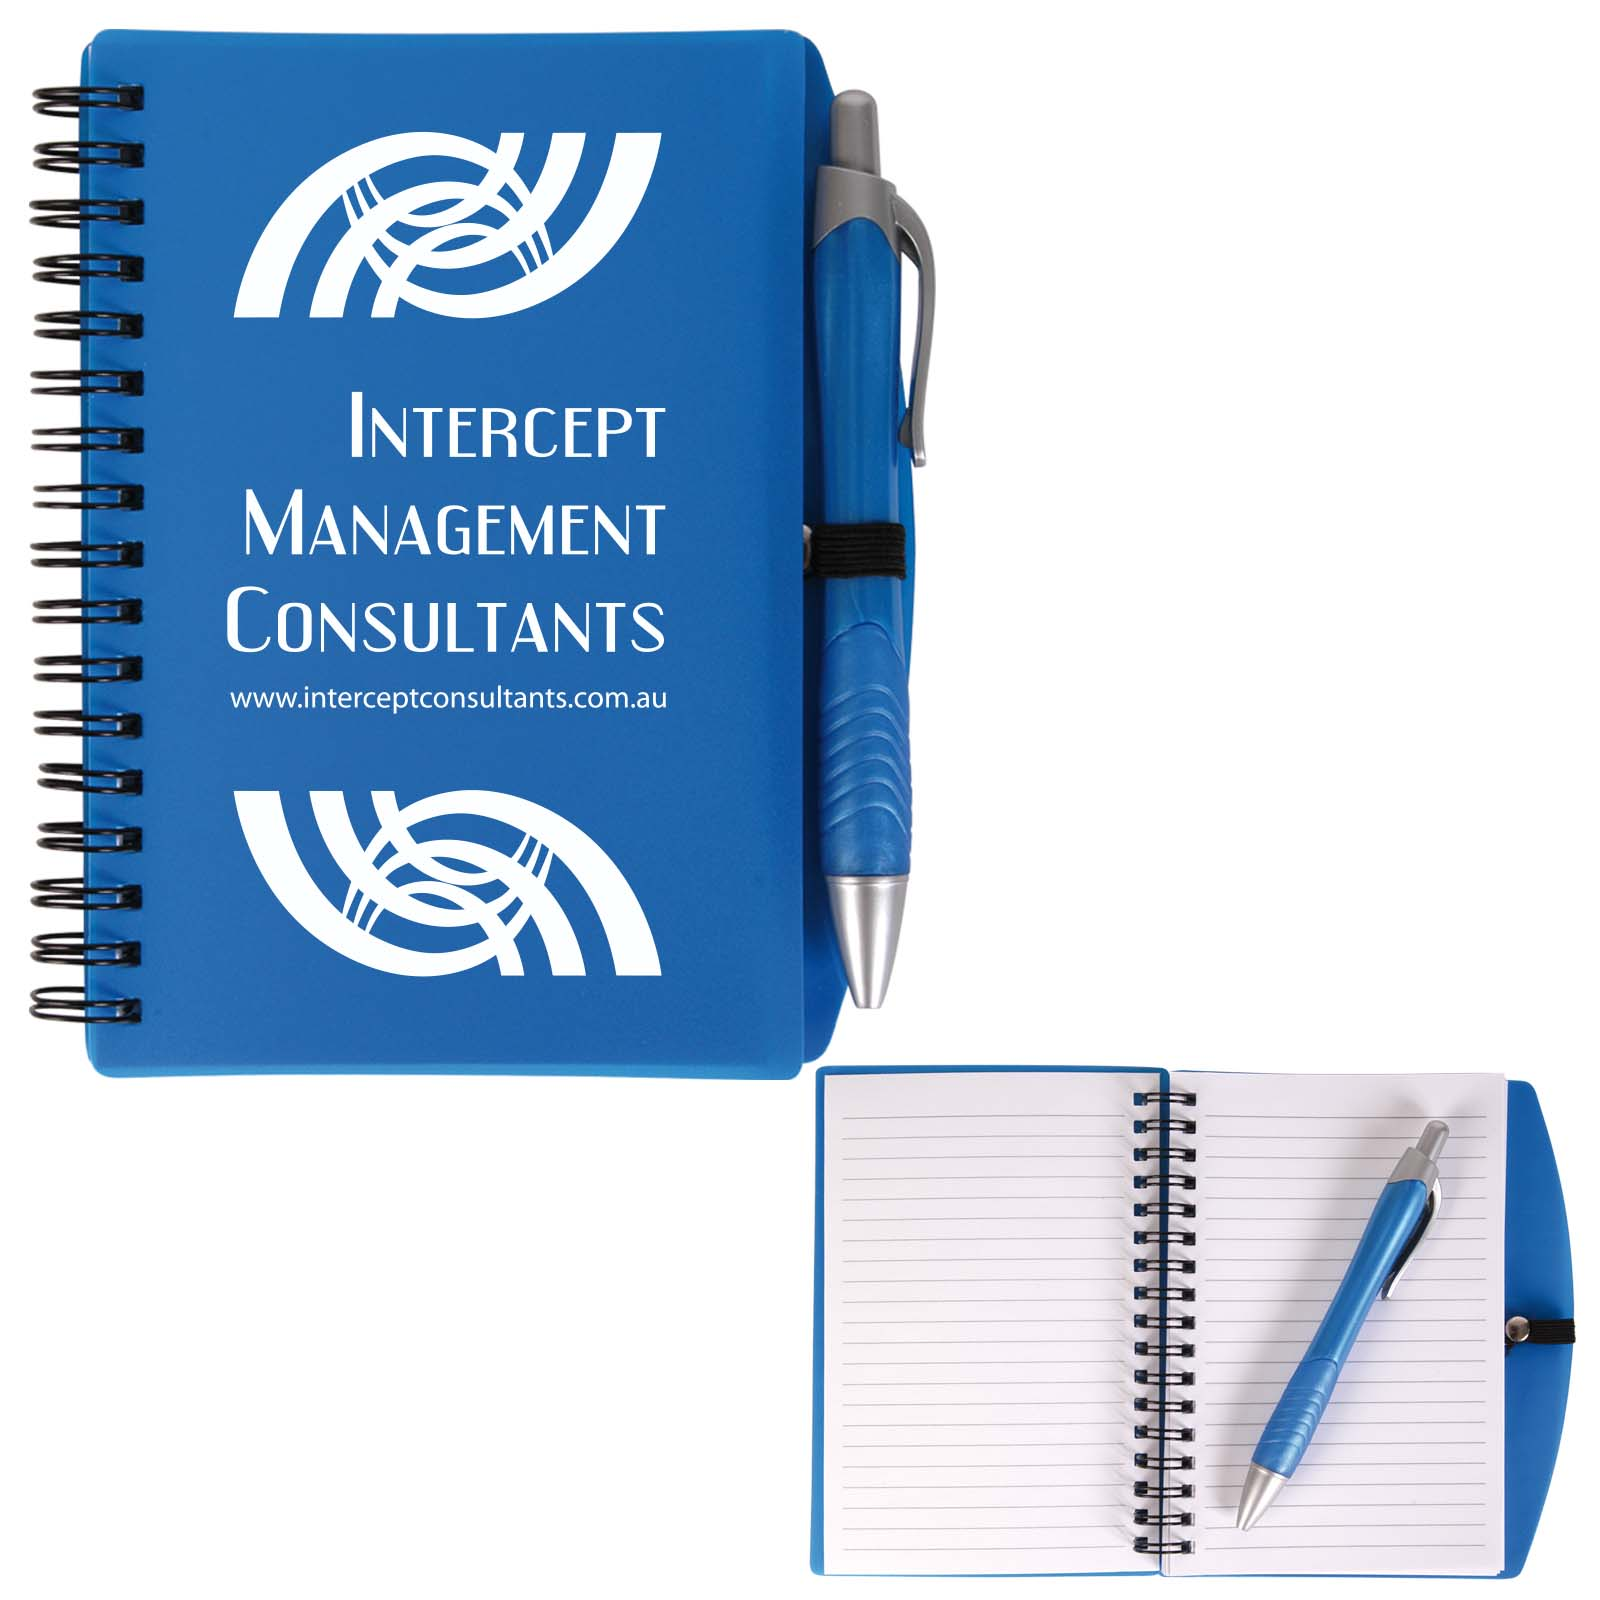 Scribe Spiral Notebook with Pen - Includes a 1 colour printed logo